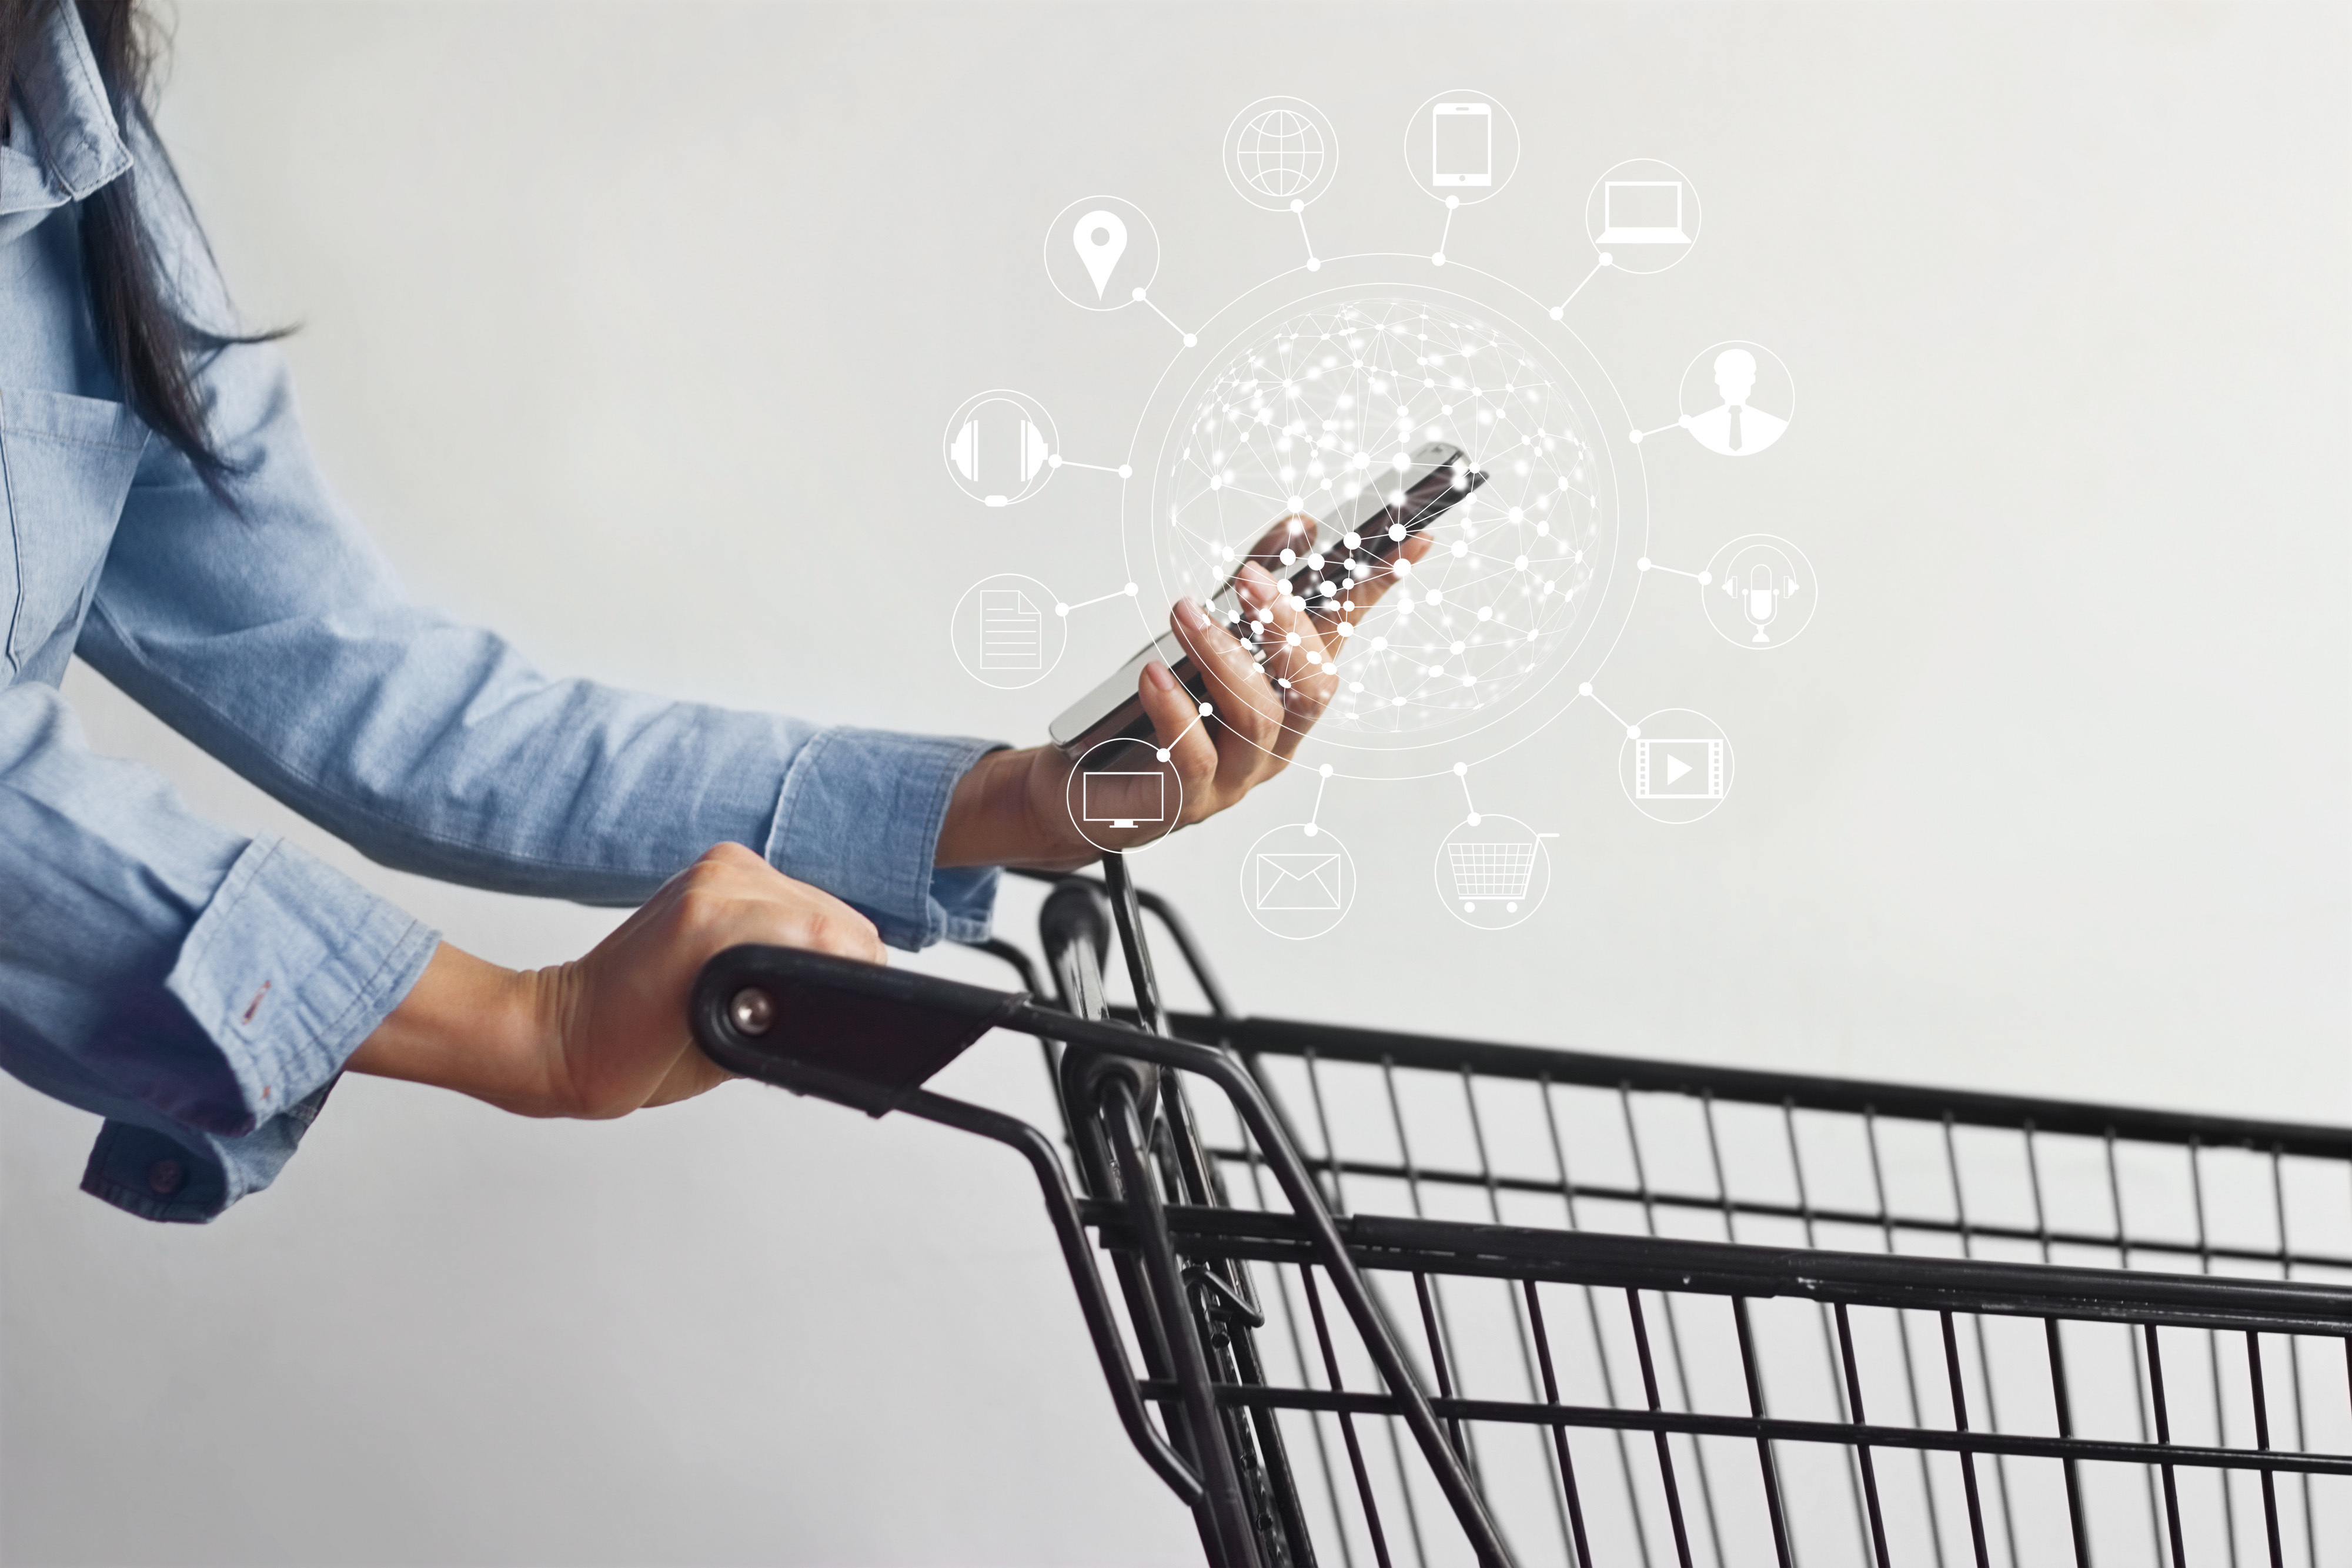 omni-channel retailing in an e-retail world